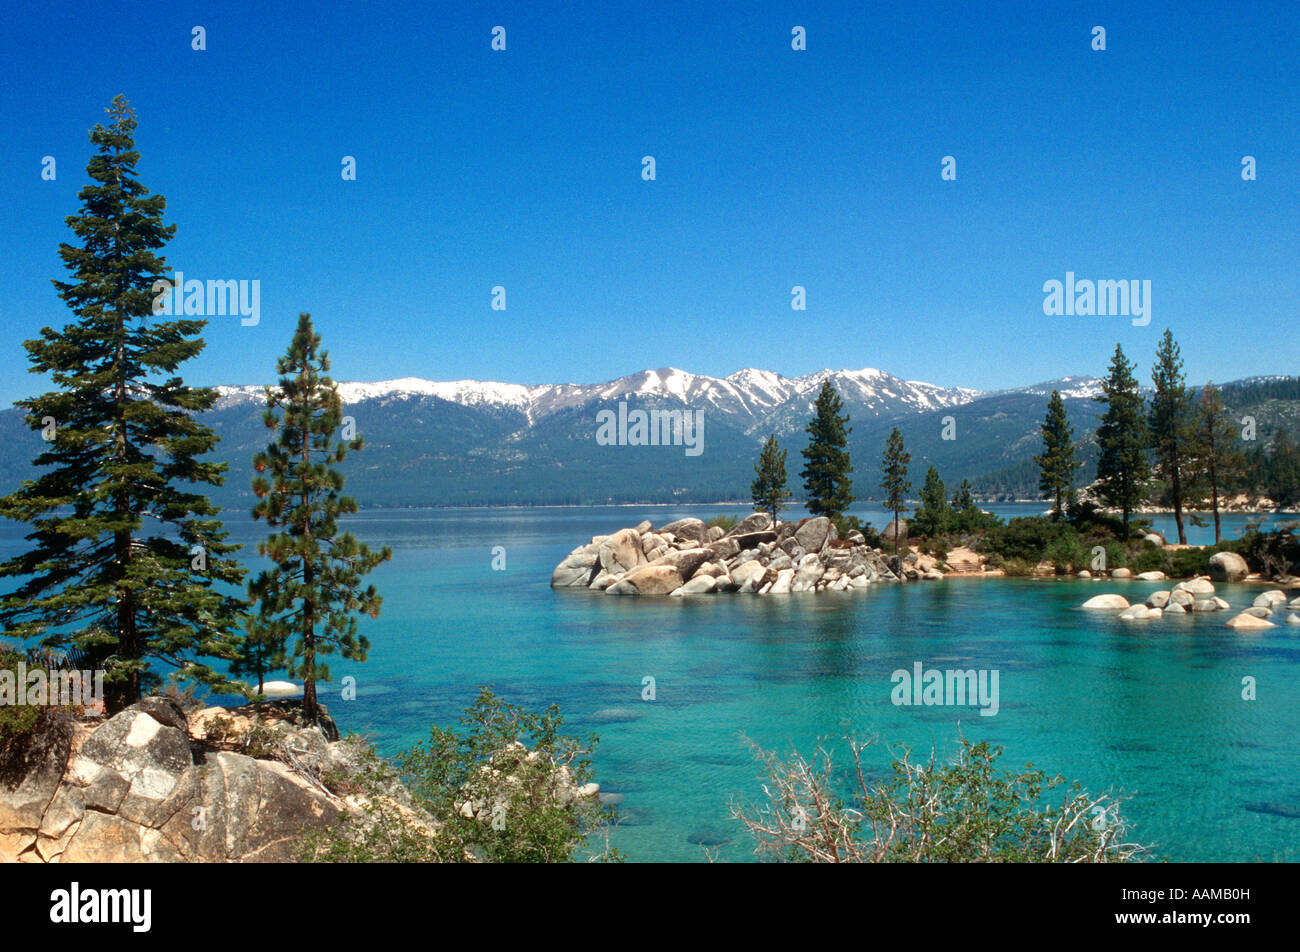 LAKE TAHOE NV Lake Tahoe, Nevada State Park Imagen De Stock